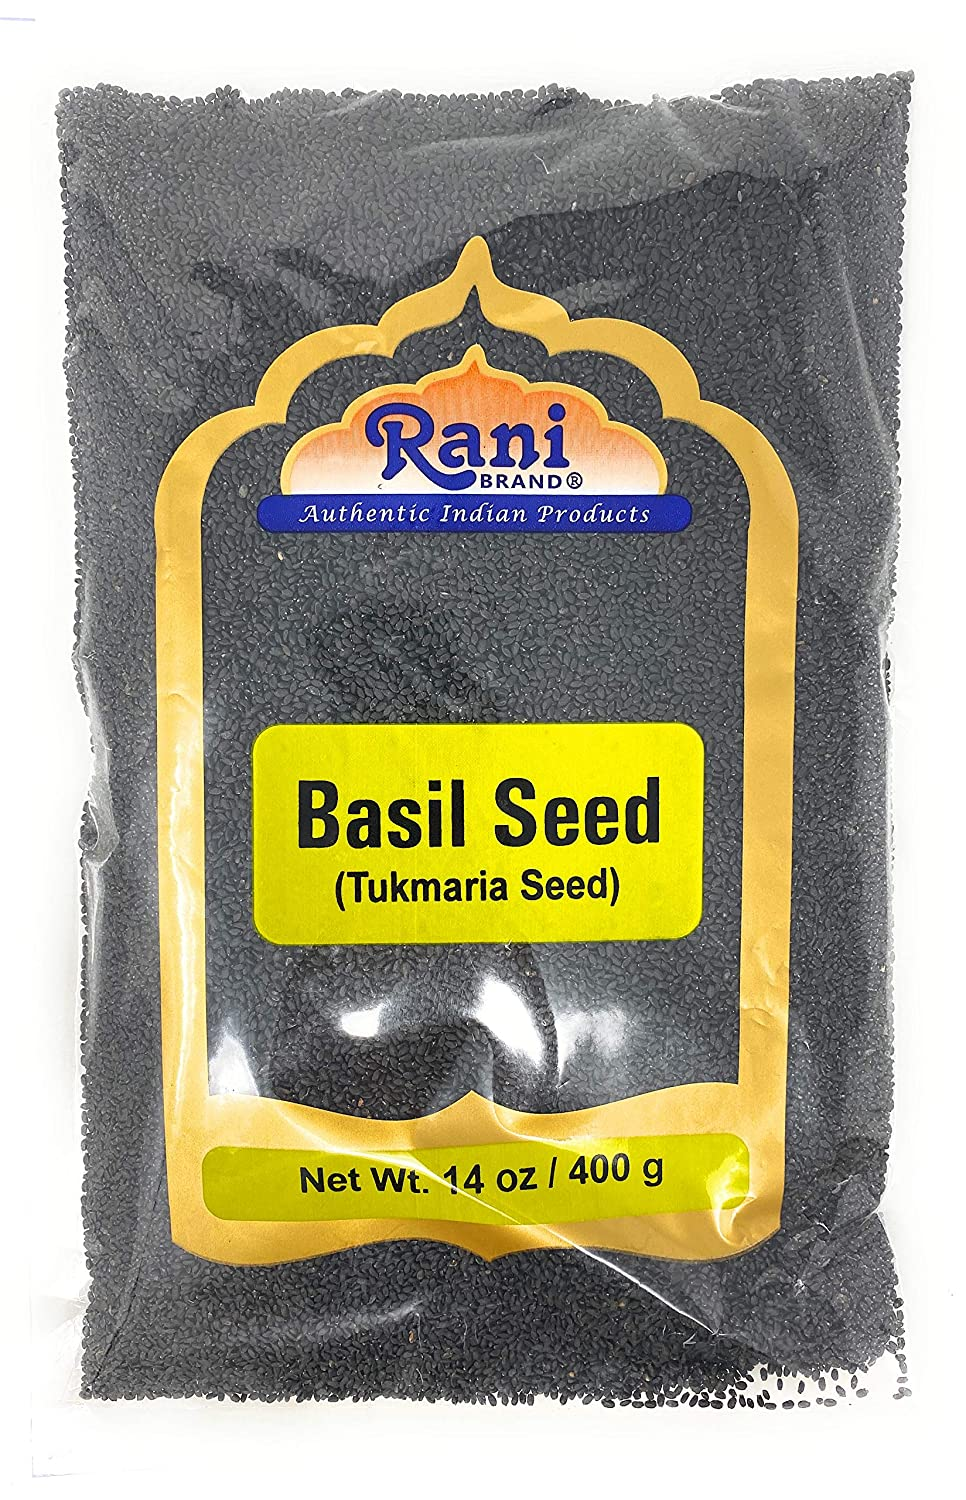 Rani Tukmaria (Natural Holy Basil Seeds) 14oz (400g) Used for Falooda / Sabja Dessert, Spice & Ayurveda Herbal ~ Gluten Free Ingredients | NON-GMO | Vegan | Indian Origin